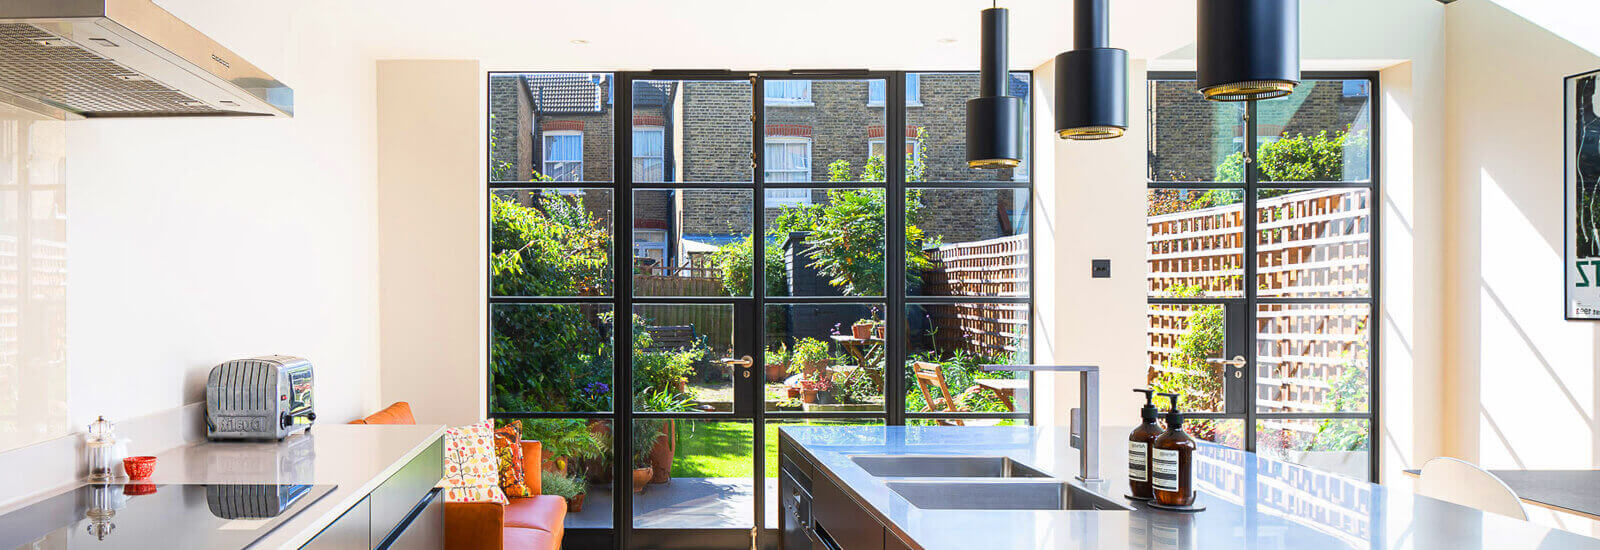 south-west-london-house-extension-builders